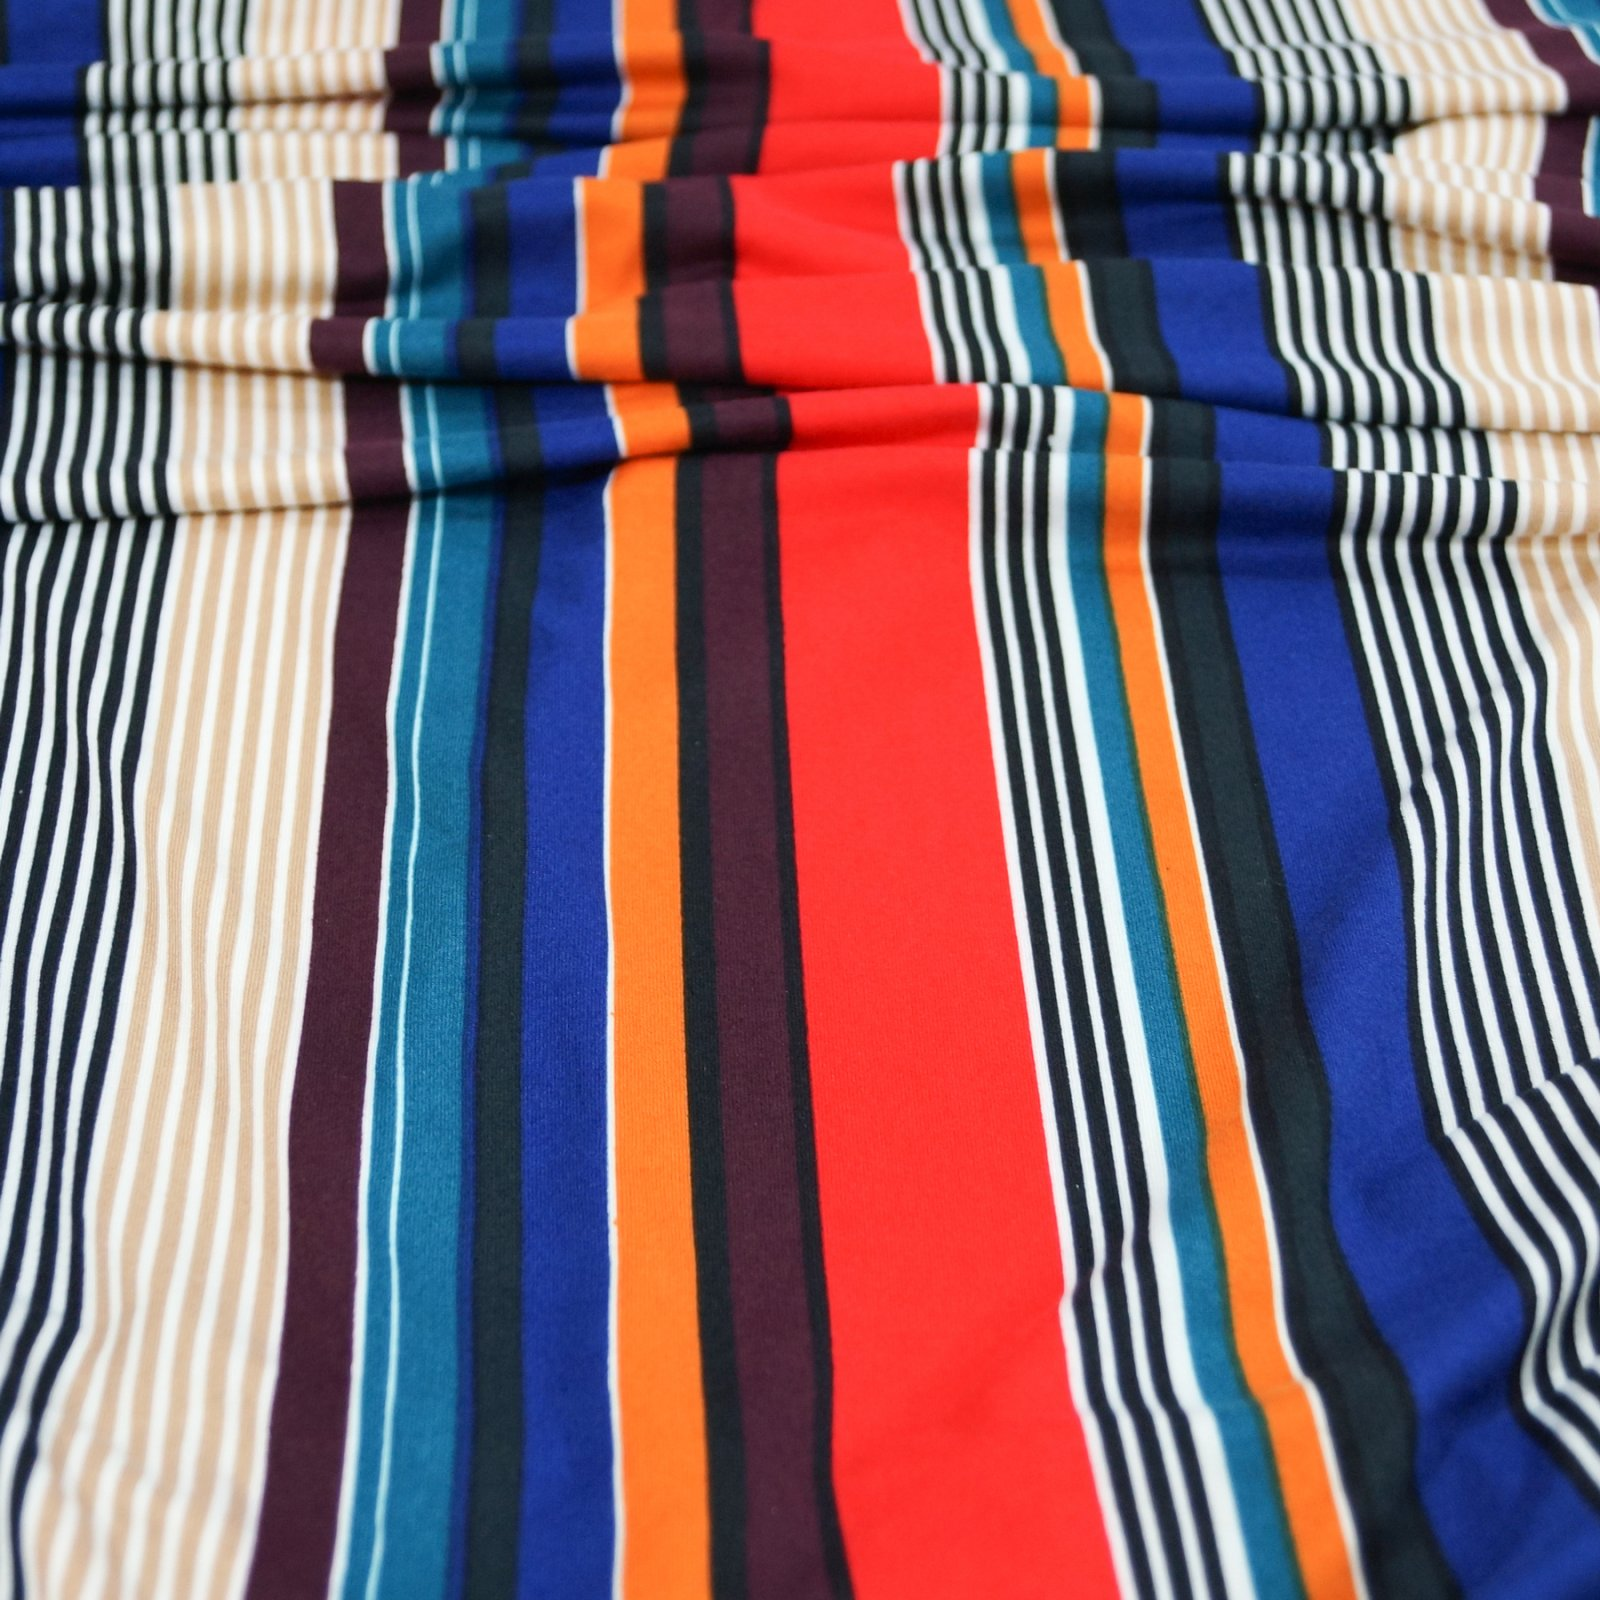 Knit - Stripes: Blue, Red, Taupe, Cream, Black